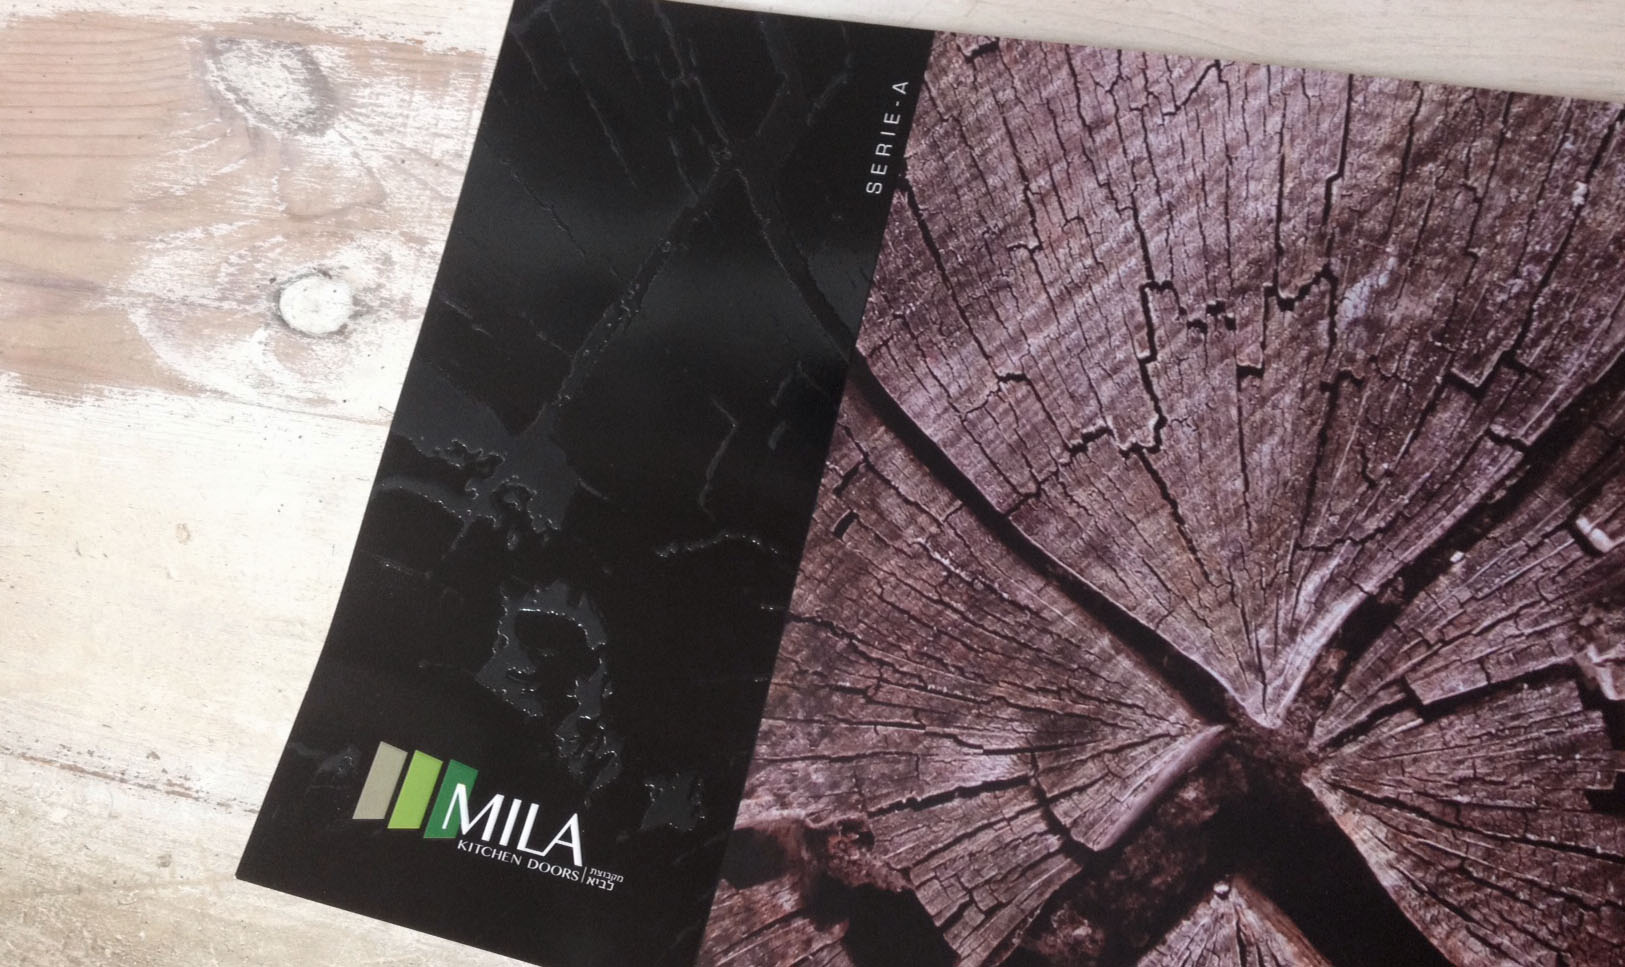 Mila Kitchen Doors